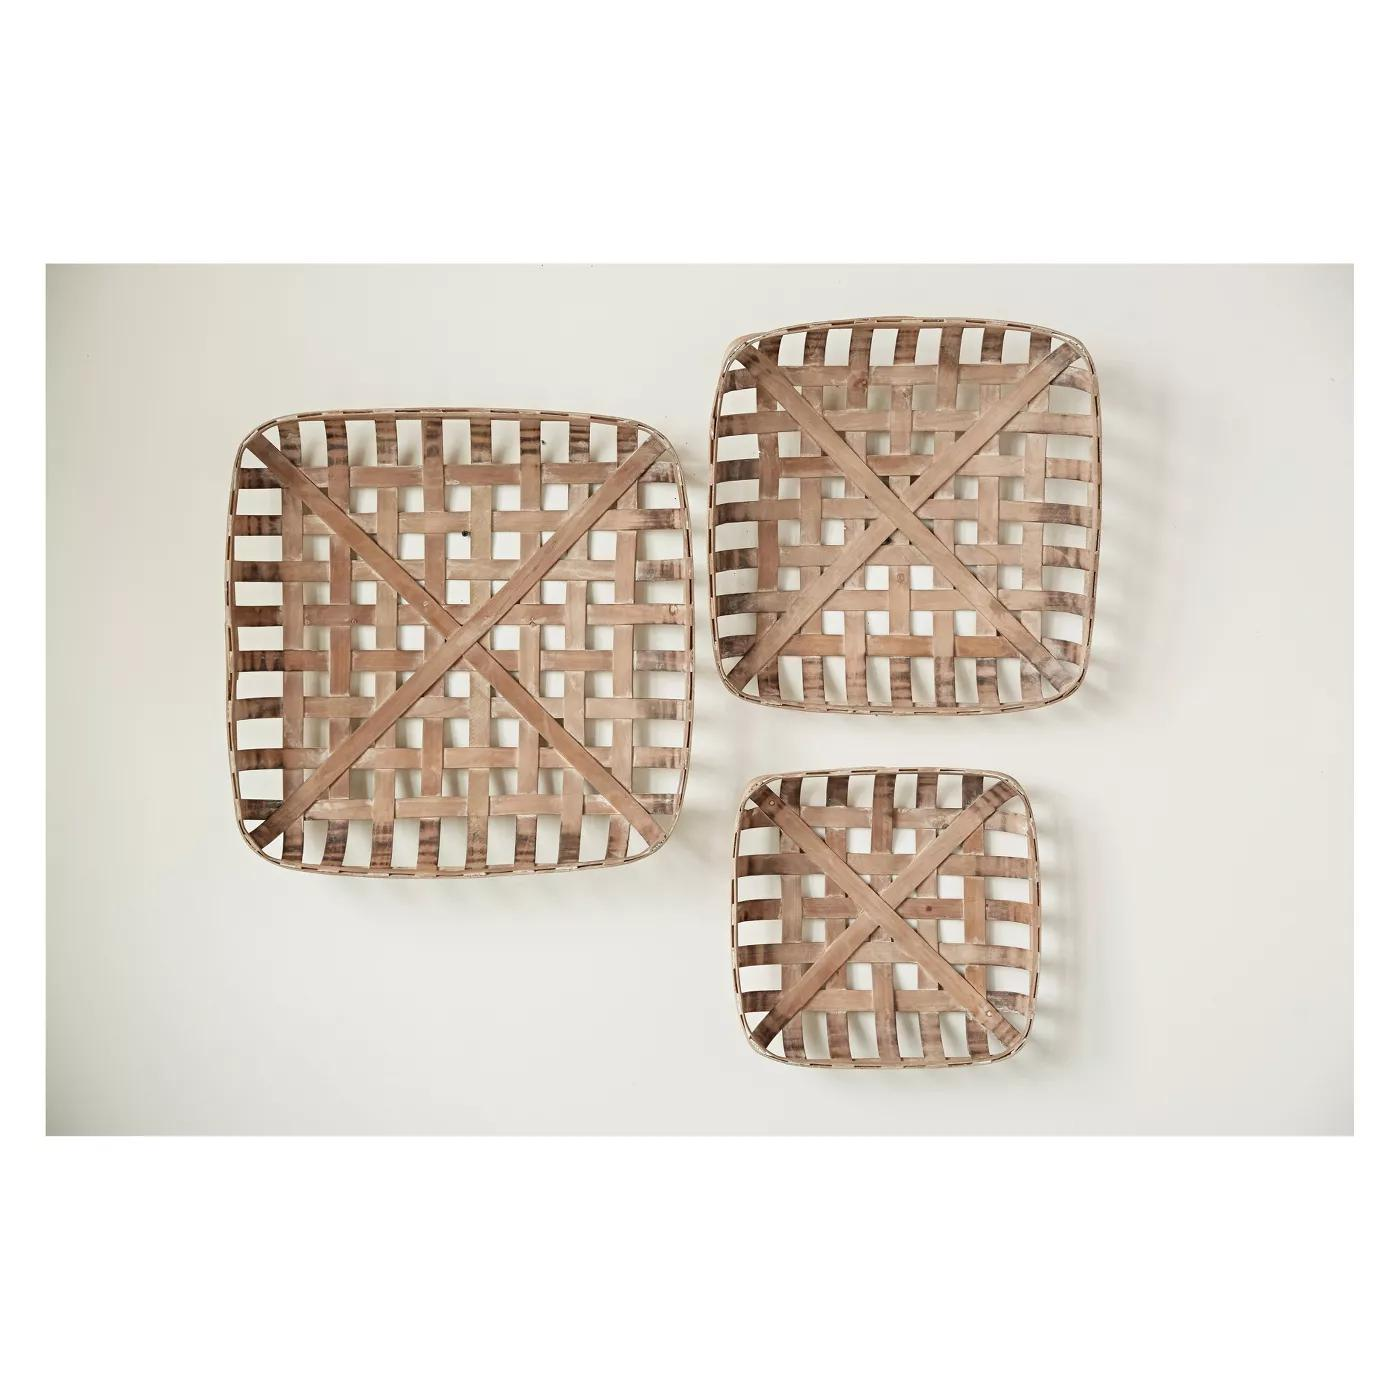 Square Reproduction Tobacco Baskets, Set of 3